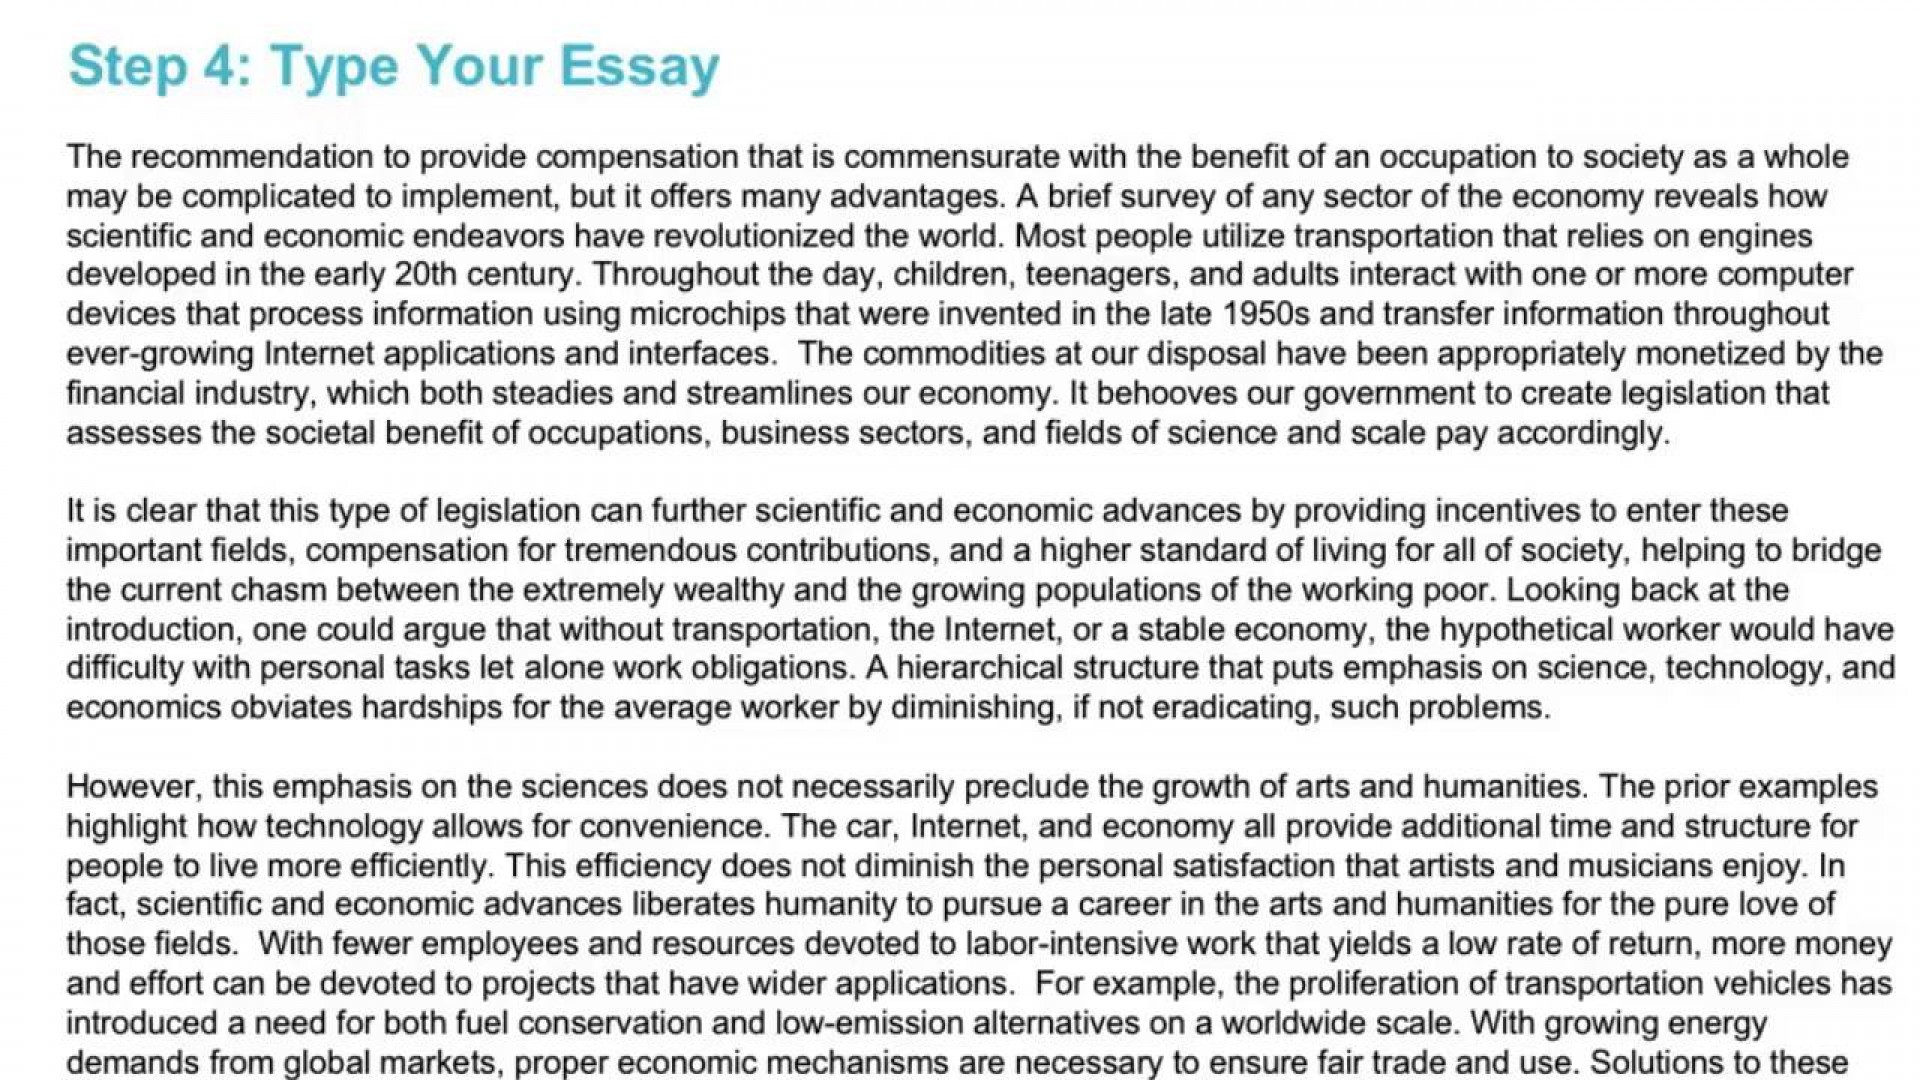 003 Gre Essay Tips Maxresdefault Amazing Reddit Writing Analytical Examples 1920